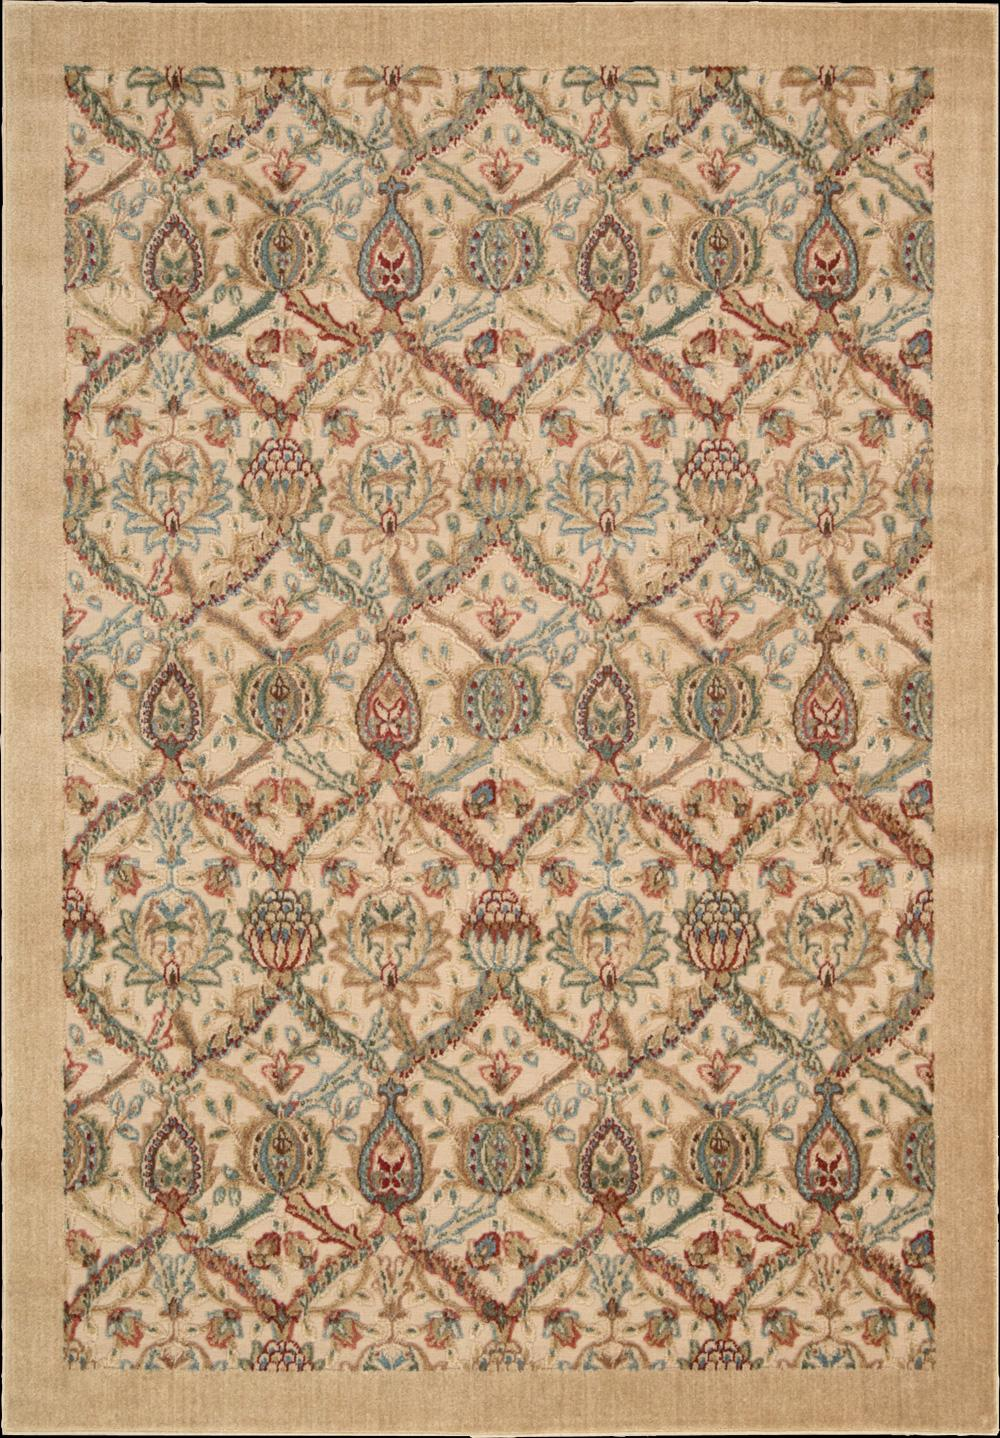 "Nourison Graphic Illusions Area Rug 5'3"" x 7'5"" - Item Number: 13089"